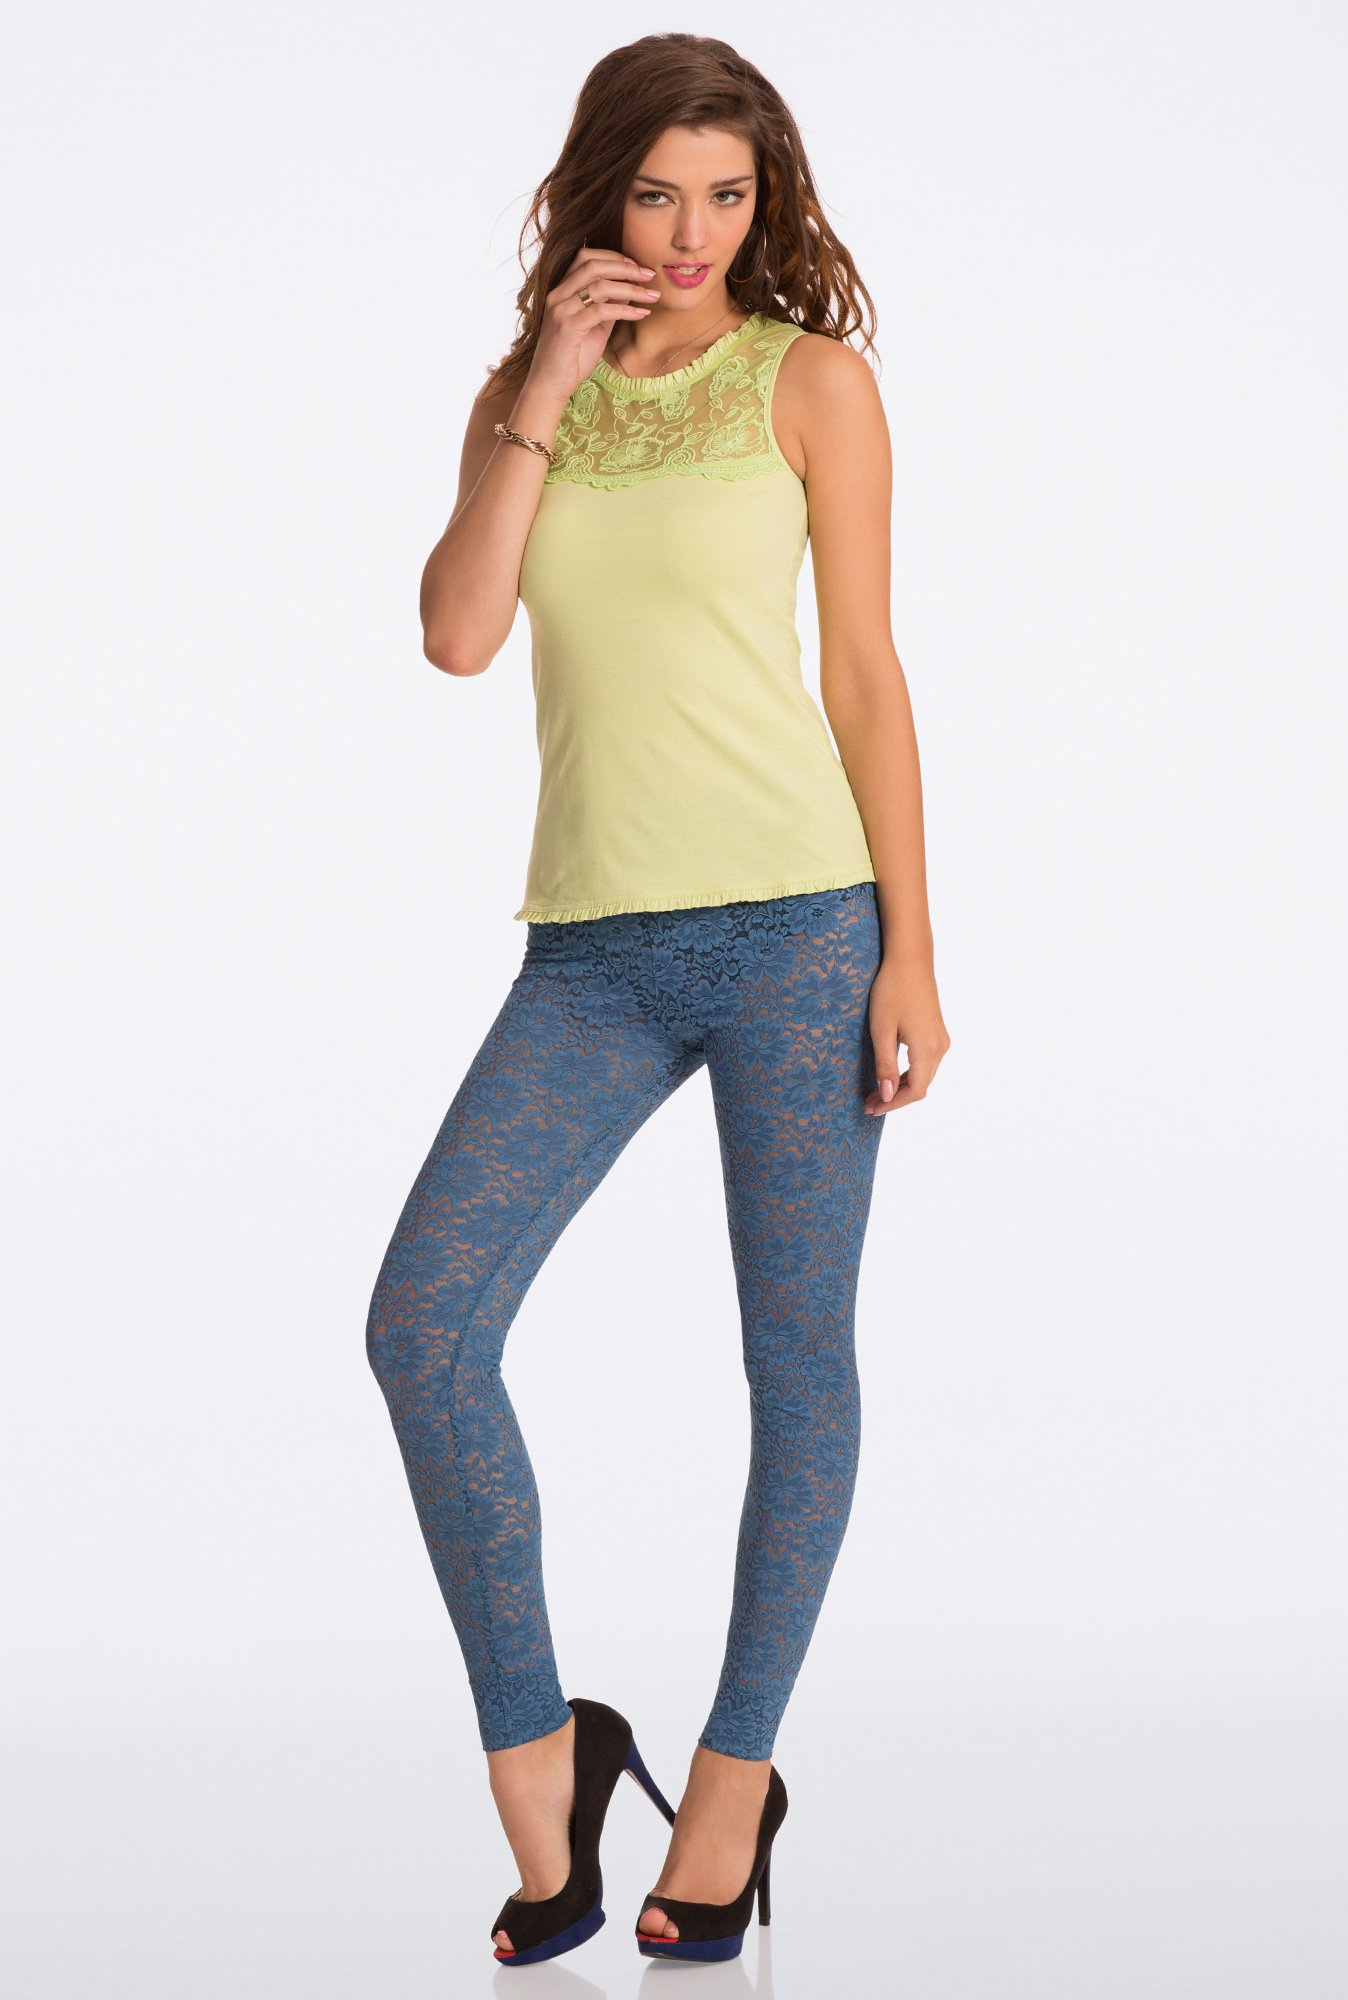 Pretty Secrets True Blue All Day Lace Leggings